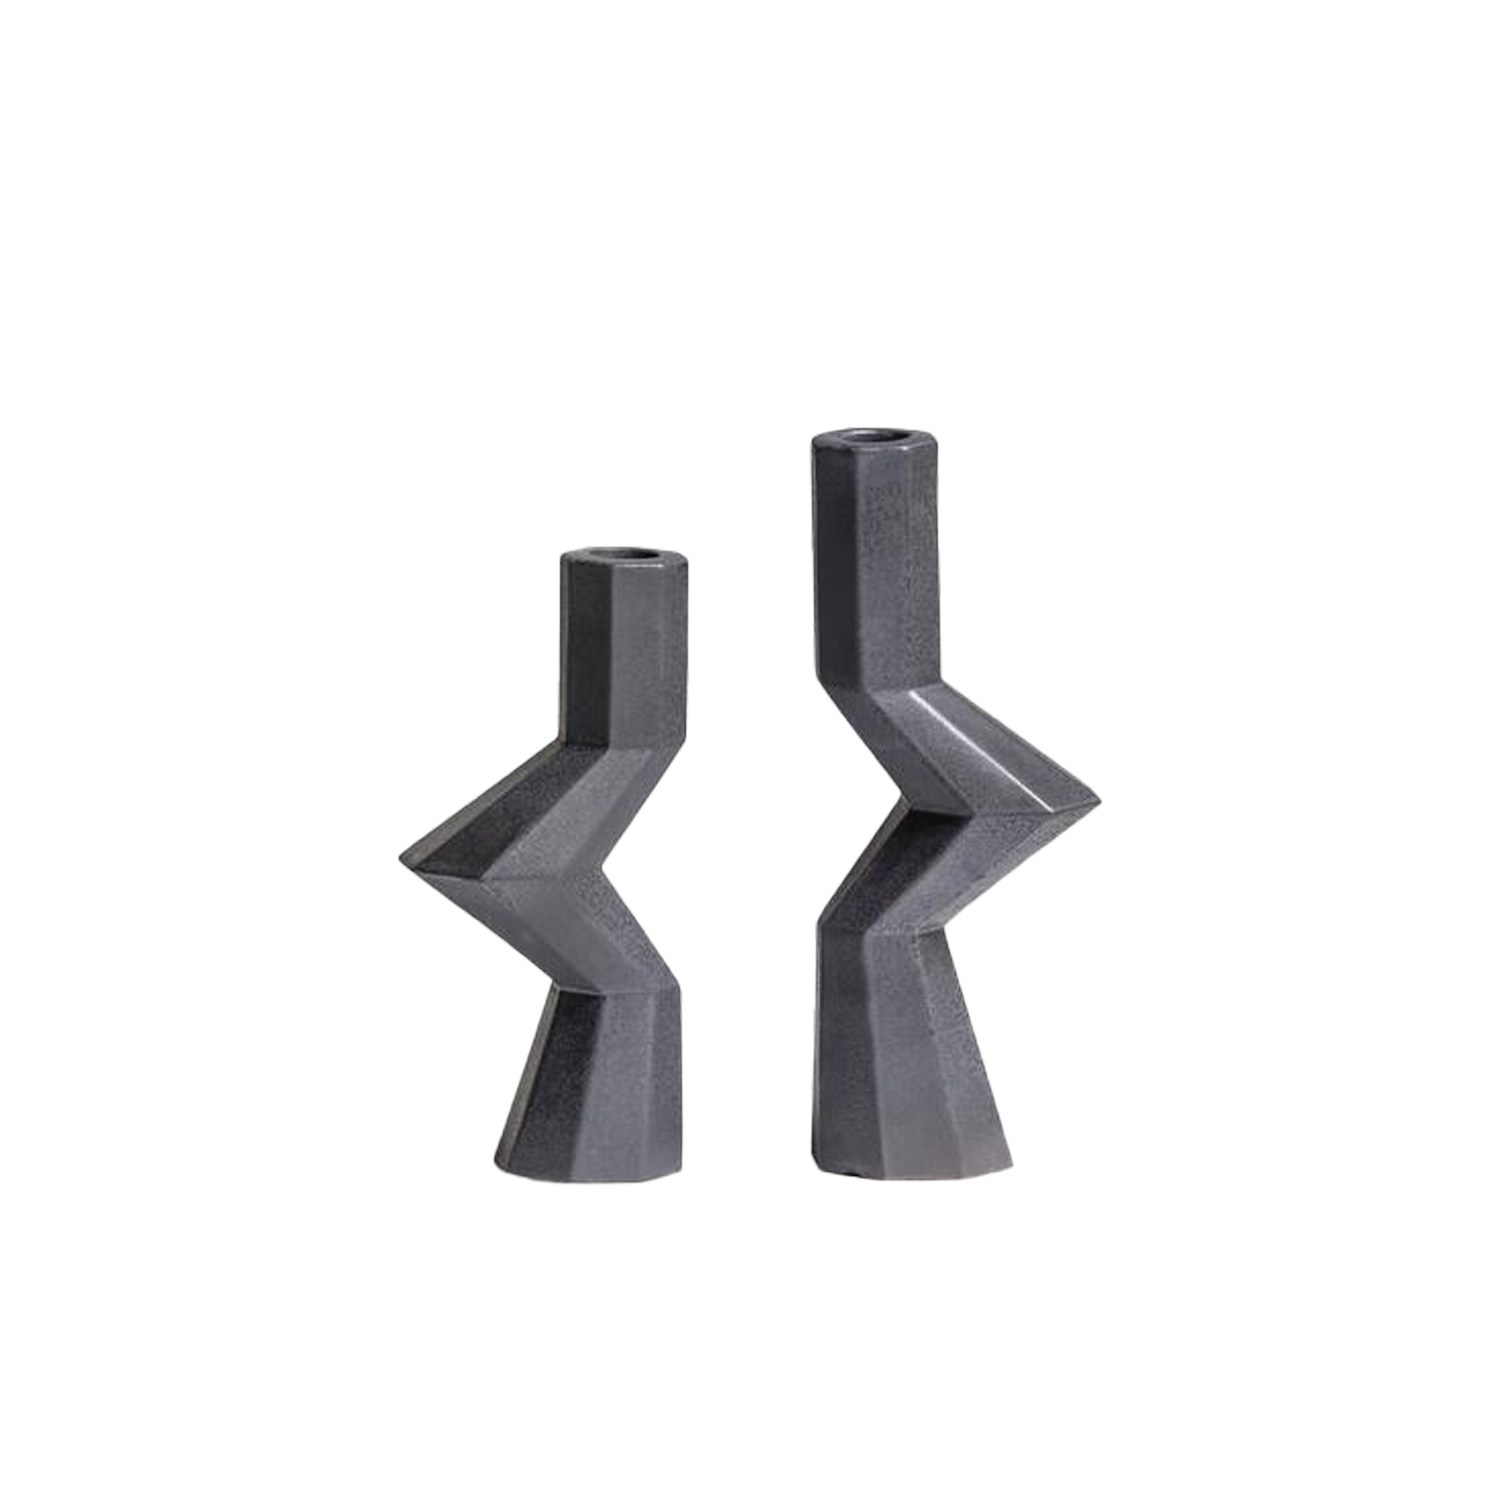 Fortress Militia Candlesticks Iron - Designer Lara Bohinc explores the marriage of ancient and futuristic form in the new Fortress Vase range, which has created a more complex geometric and modern structure from the original inspiration of the octagonal towers at the Diocletian Palace in Croatia. The resulting hexagonal blocks interlock and embrace to allow the play of light and shade on the many surfaces and angles. These are handmade from ceramic in a small Italian artisanal workshop and come in different finishes  | Matter of Stuff